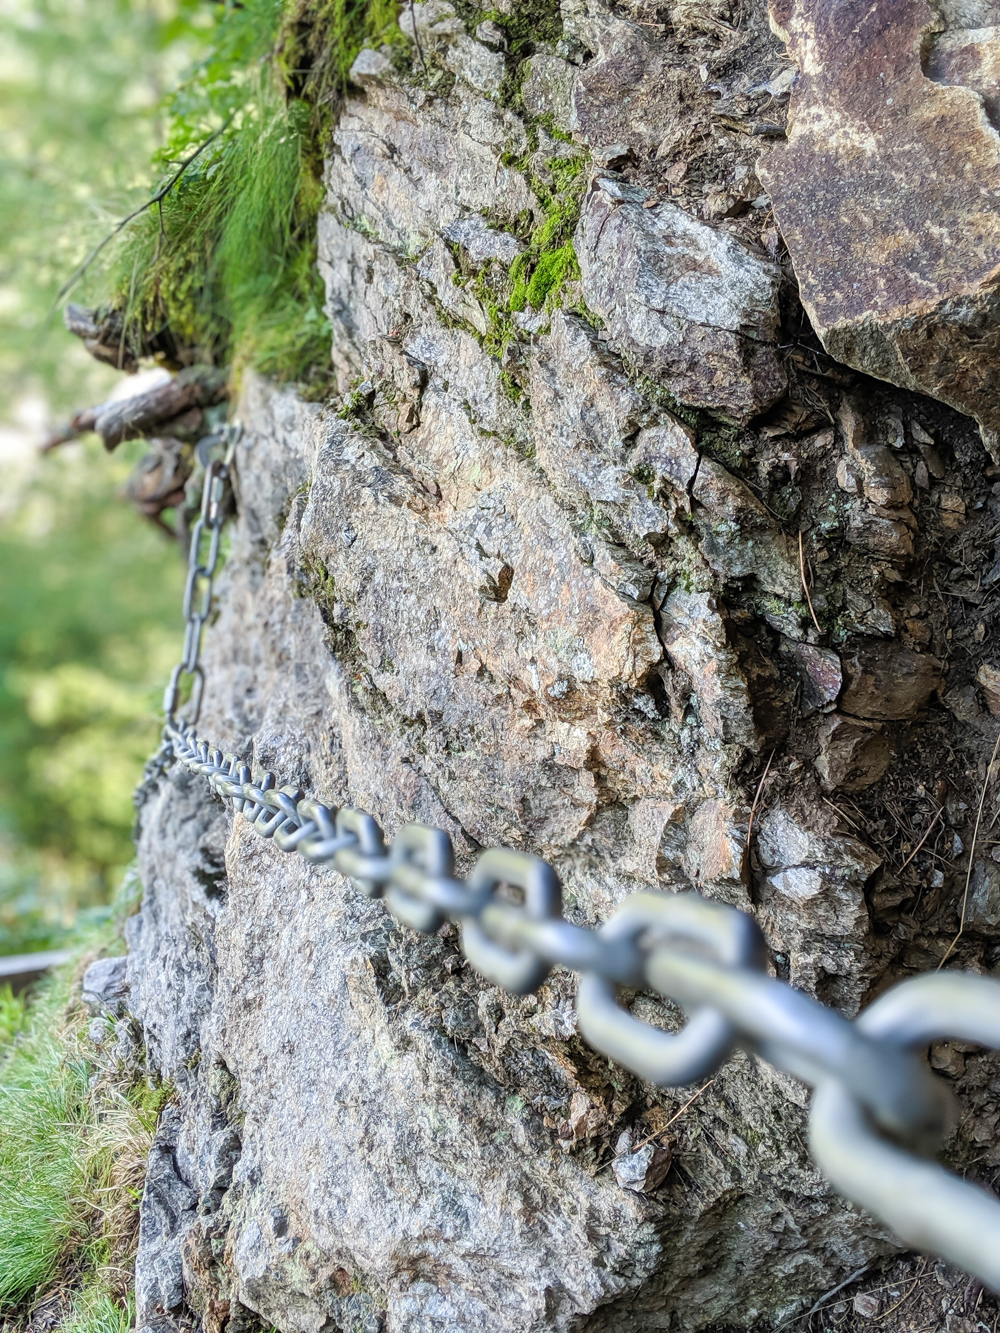 Awesome things to do in Chamonix in the summer: Alpine bucket list / rocky trail chains